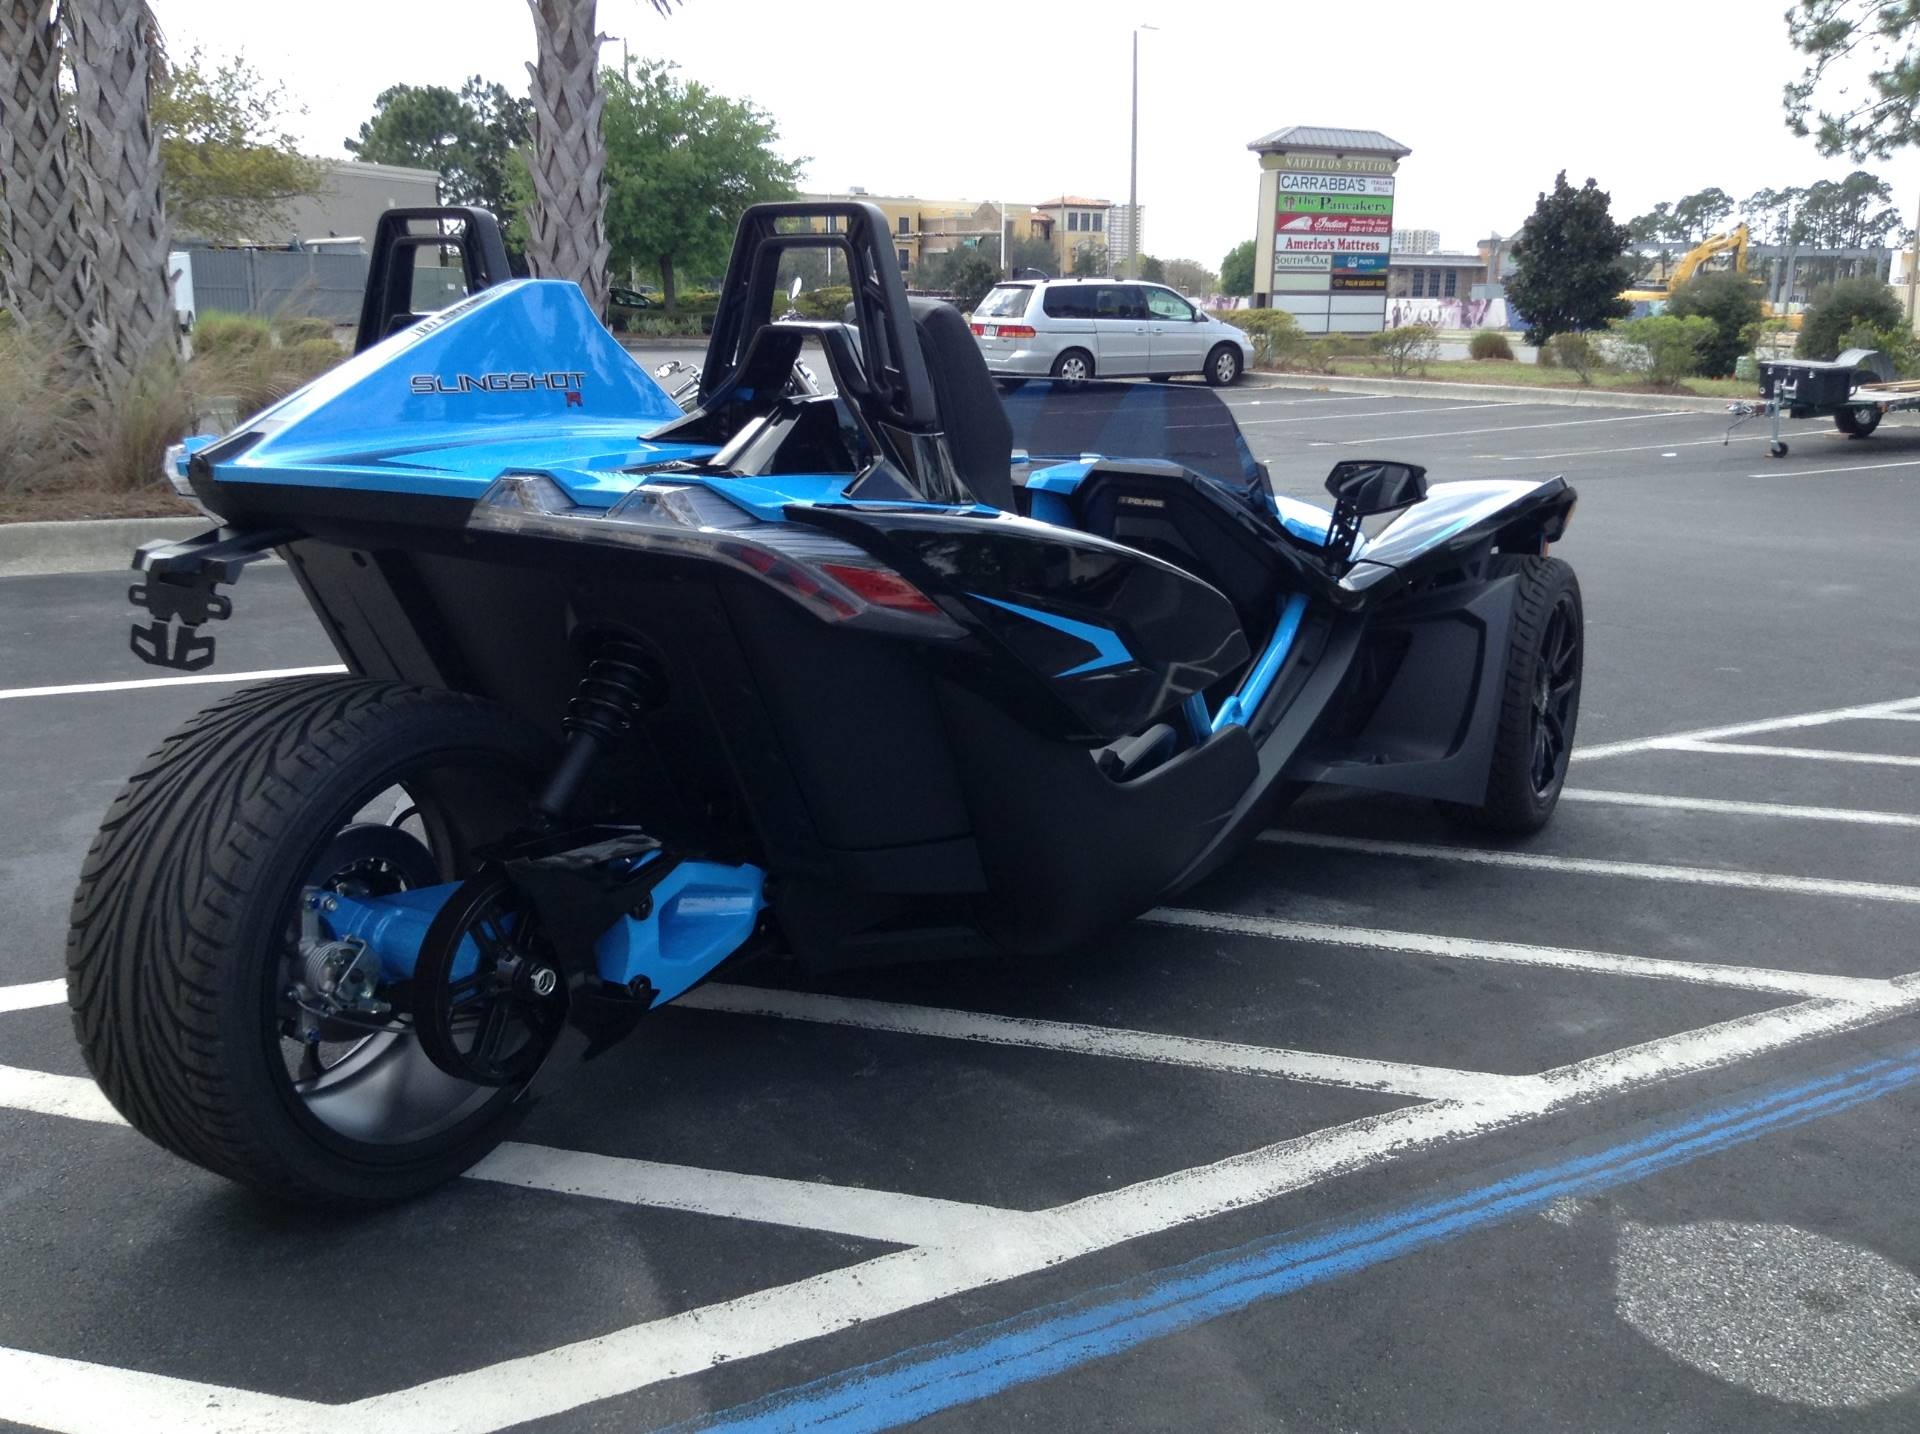 2020 Polaris SLINGSHOT in Panama City Beach, Florida - Photo 6